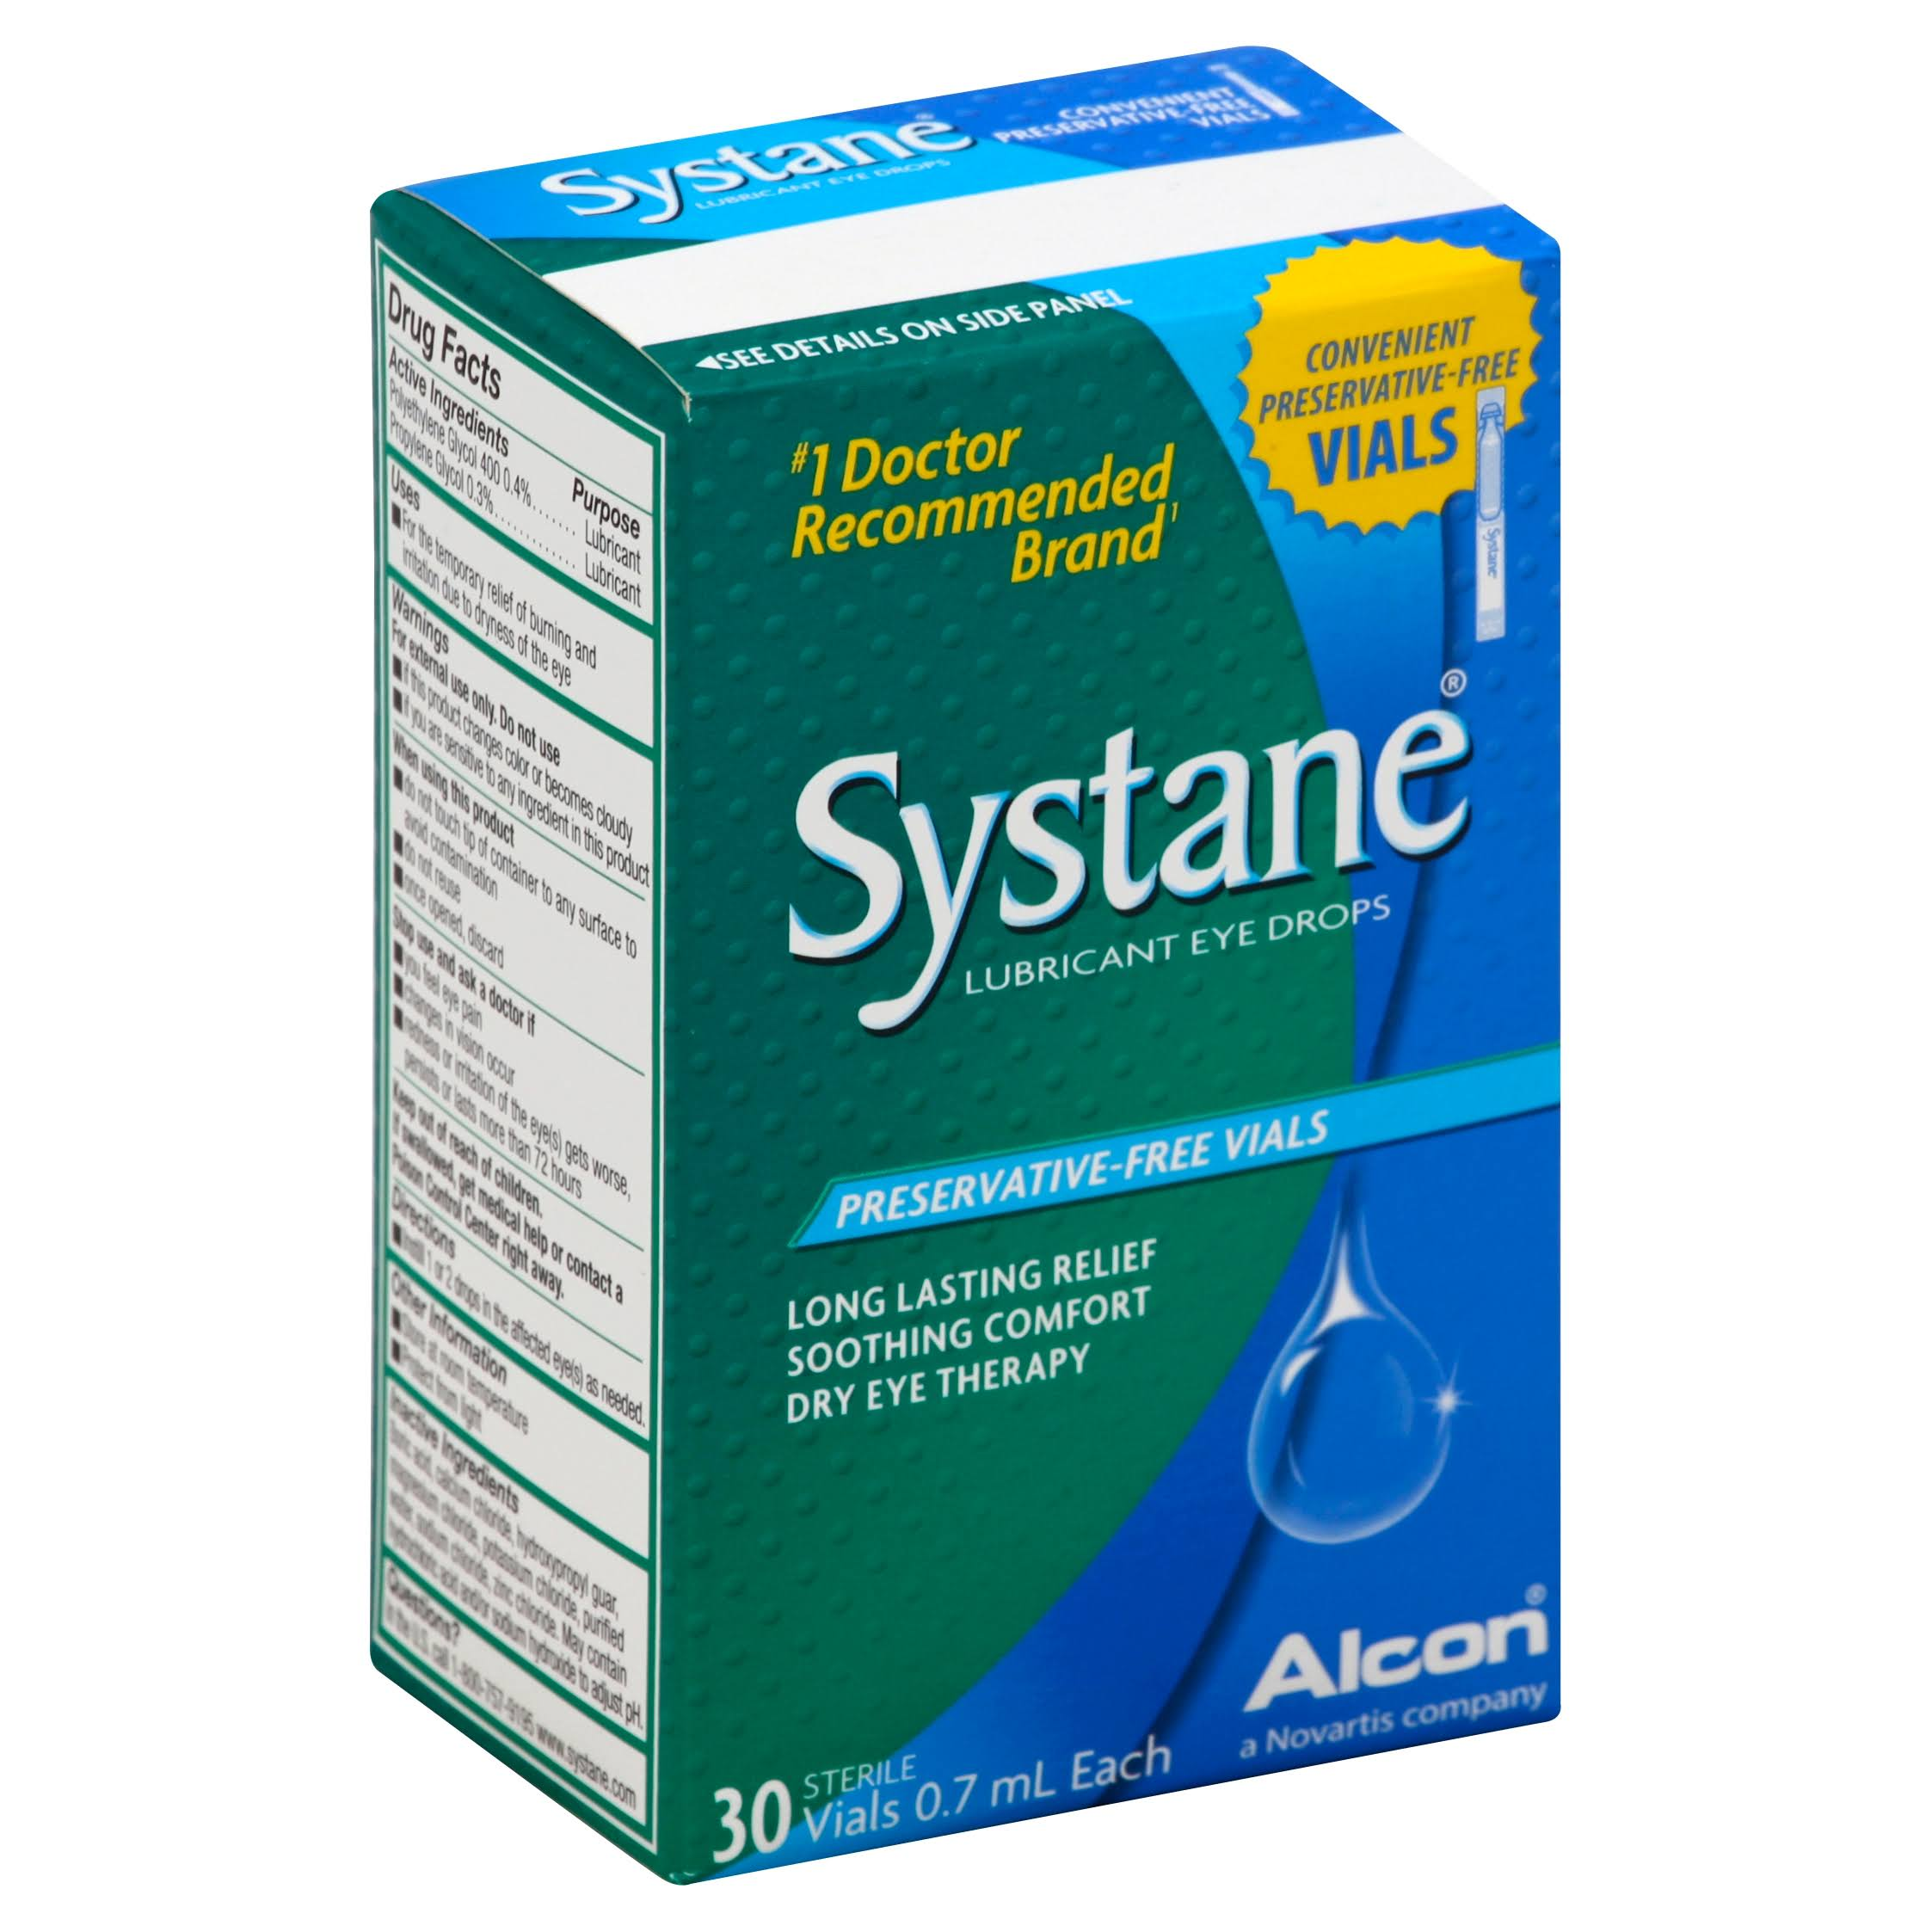 Alcon Systane Lubricant Eye Drops - 30 Vials, 21ml